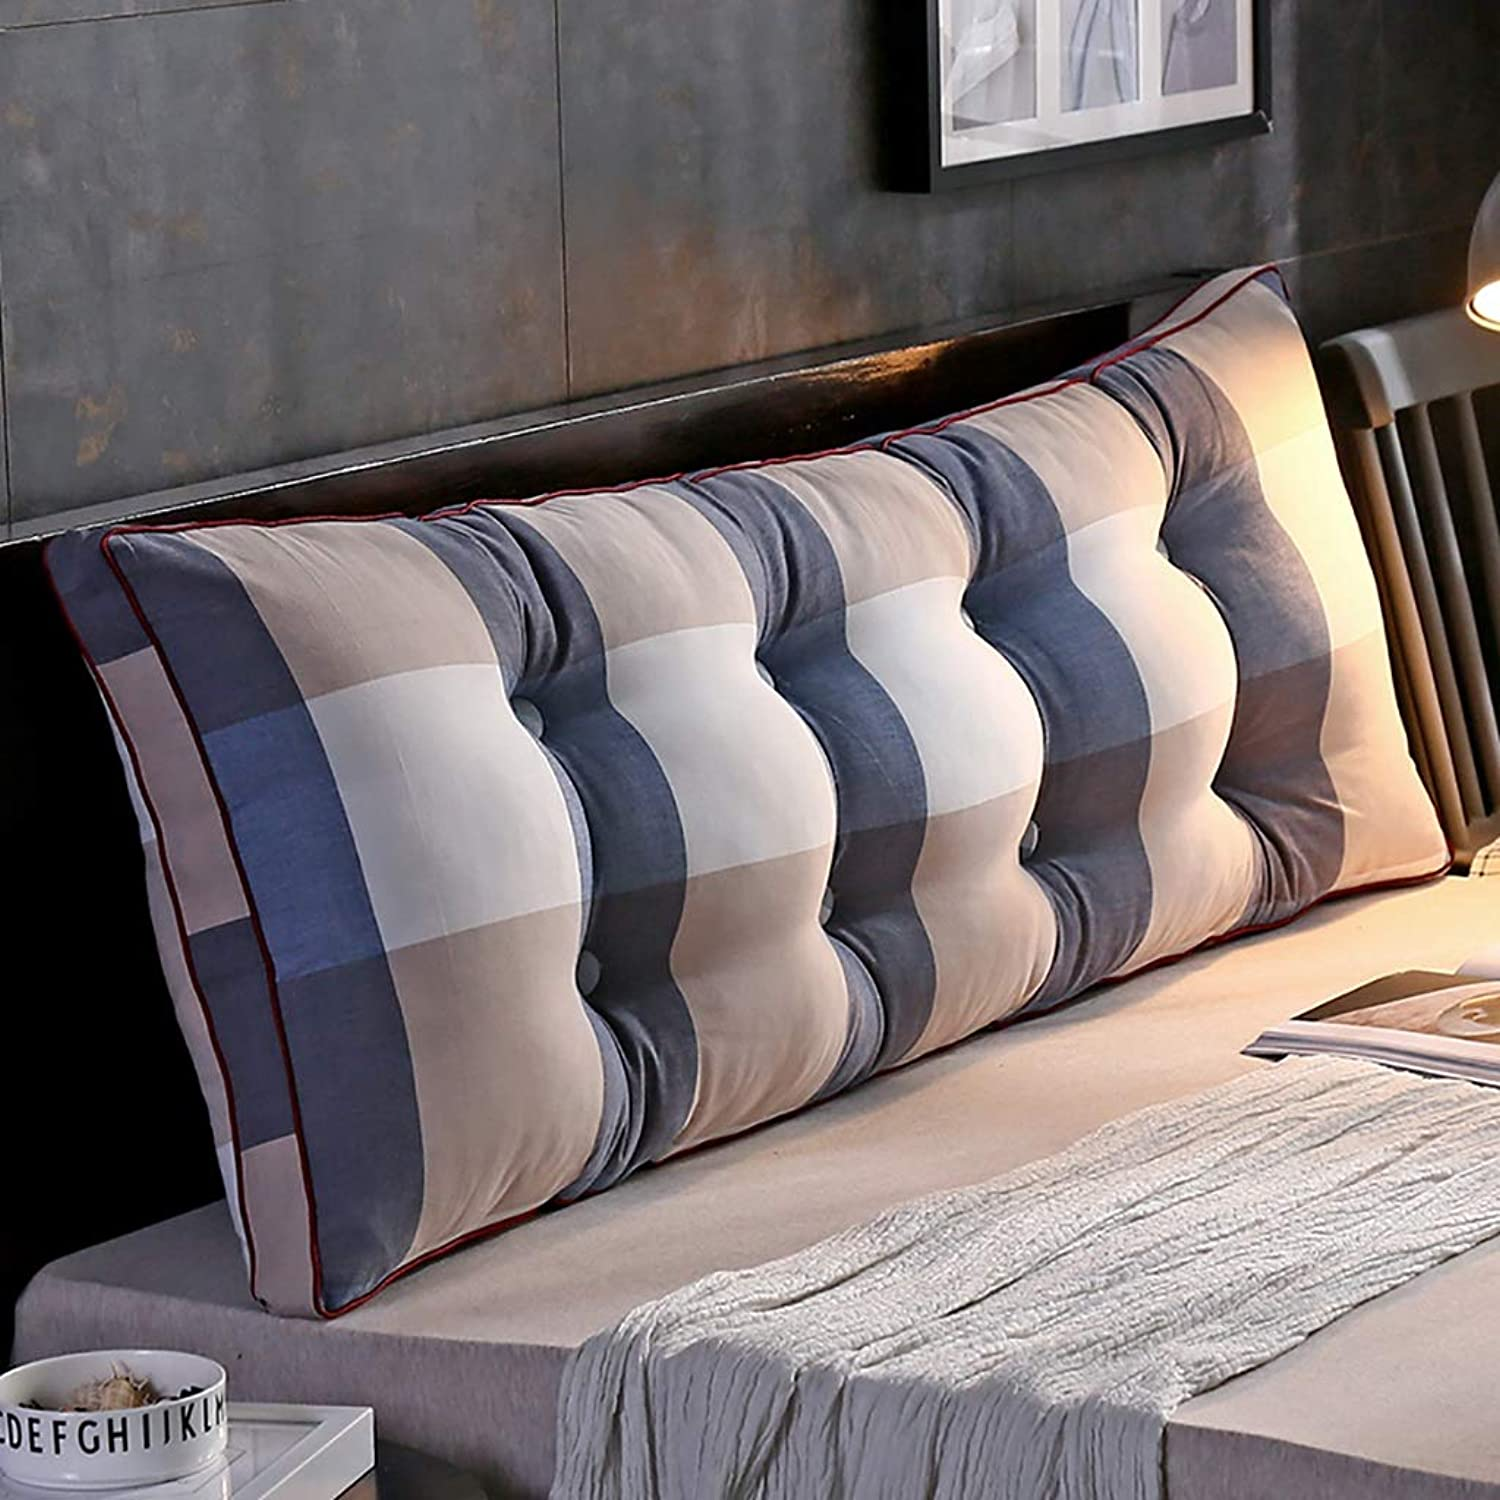 Headboard Bed Backrest Cushion Bed Cushion Bedside Pillow Cotton Fabric Soft Large Pillow Lumbar Support Detachable and Washable 17 Solid colors 5